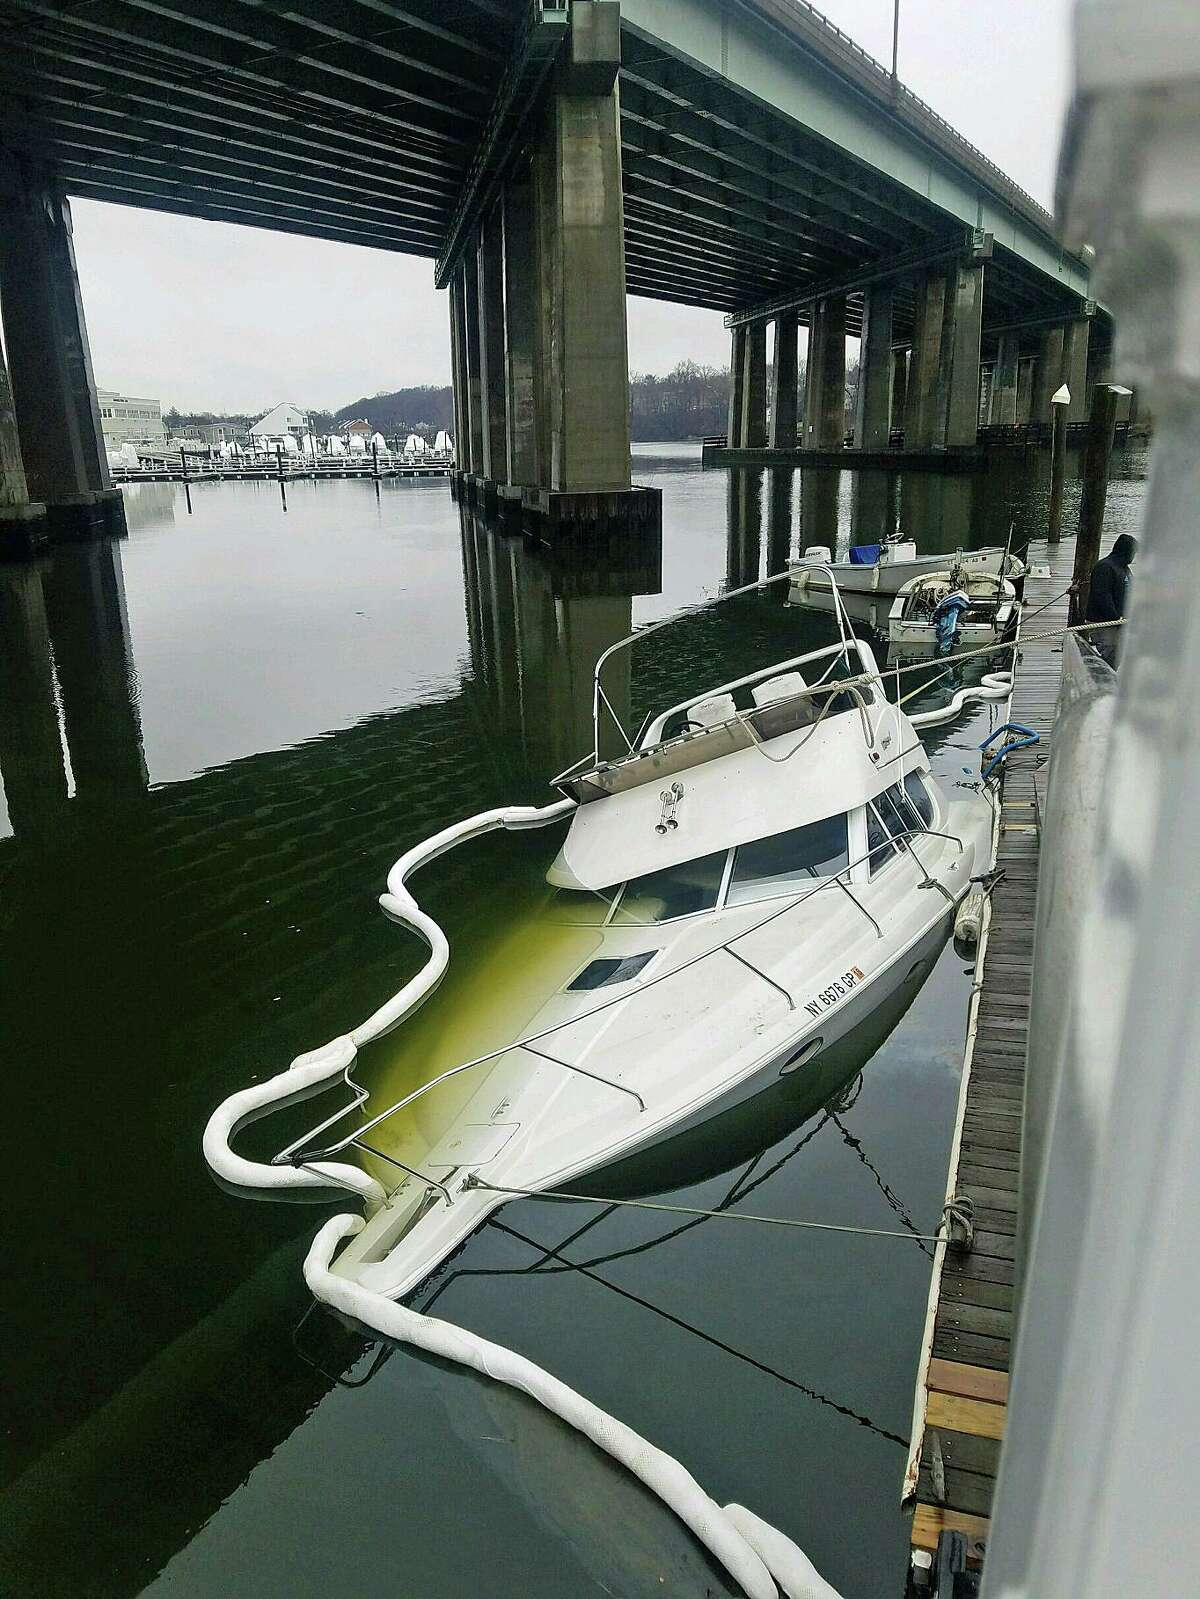 A partially sunken boat was found in the area of Riverscape Marina below an I-95 bridge on Tuesday, Feb. 11, 2020. Upon arrival, Marine Officers observed the vessel was leaking oil and requested Greenwich Fire Department respond with booms to contain the spill while employees of Harbors End attempted to de-water the vessel.